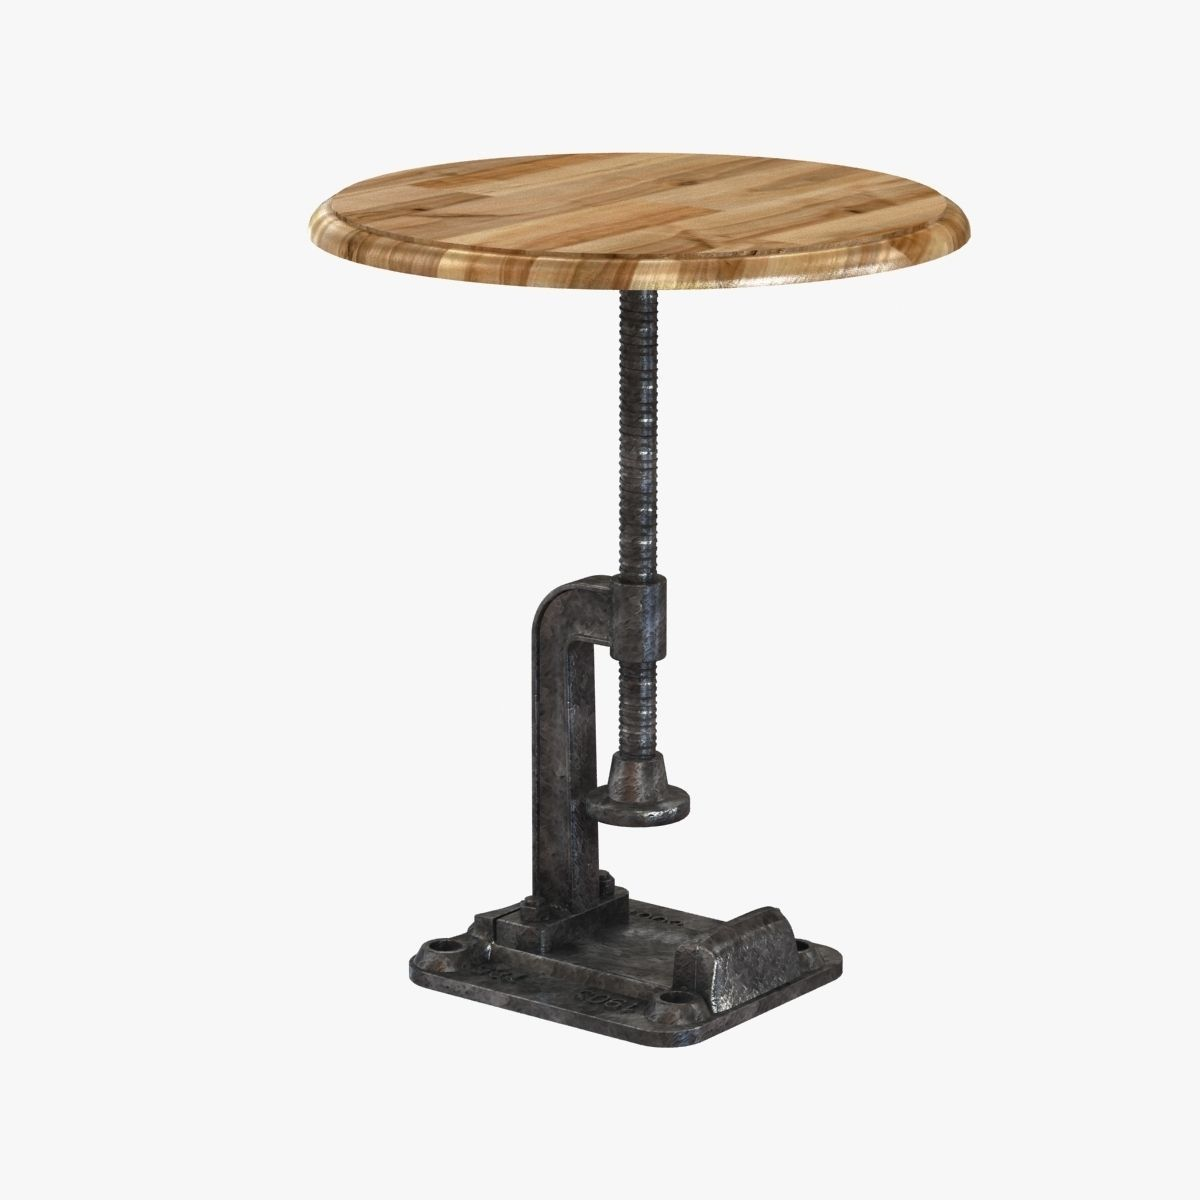 Preferred Reclaimed Wood Rustic Clamp Side Table Stool 3D model MAX OBJ 3DS  HK24